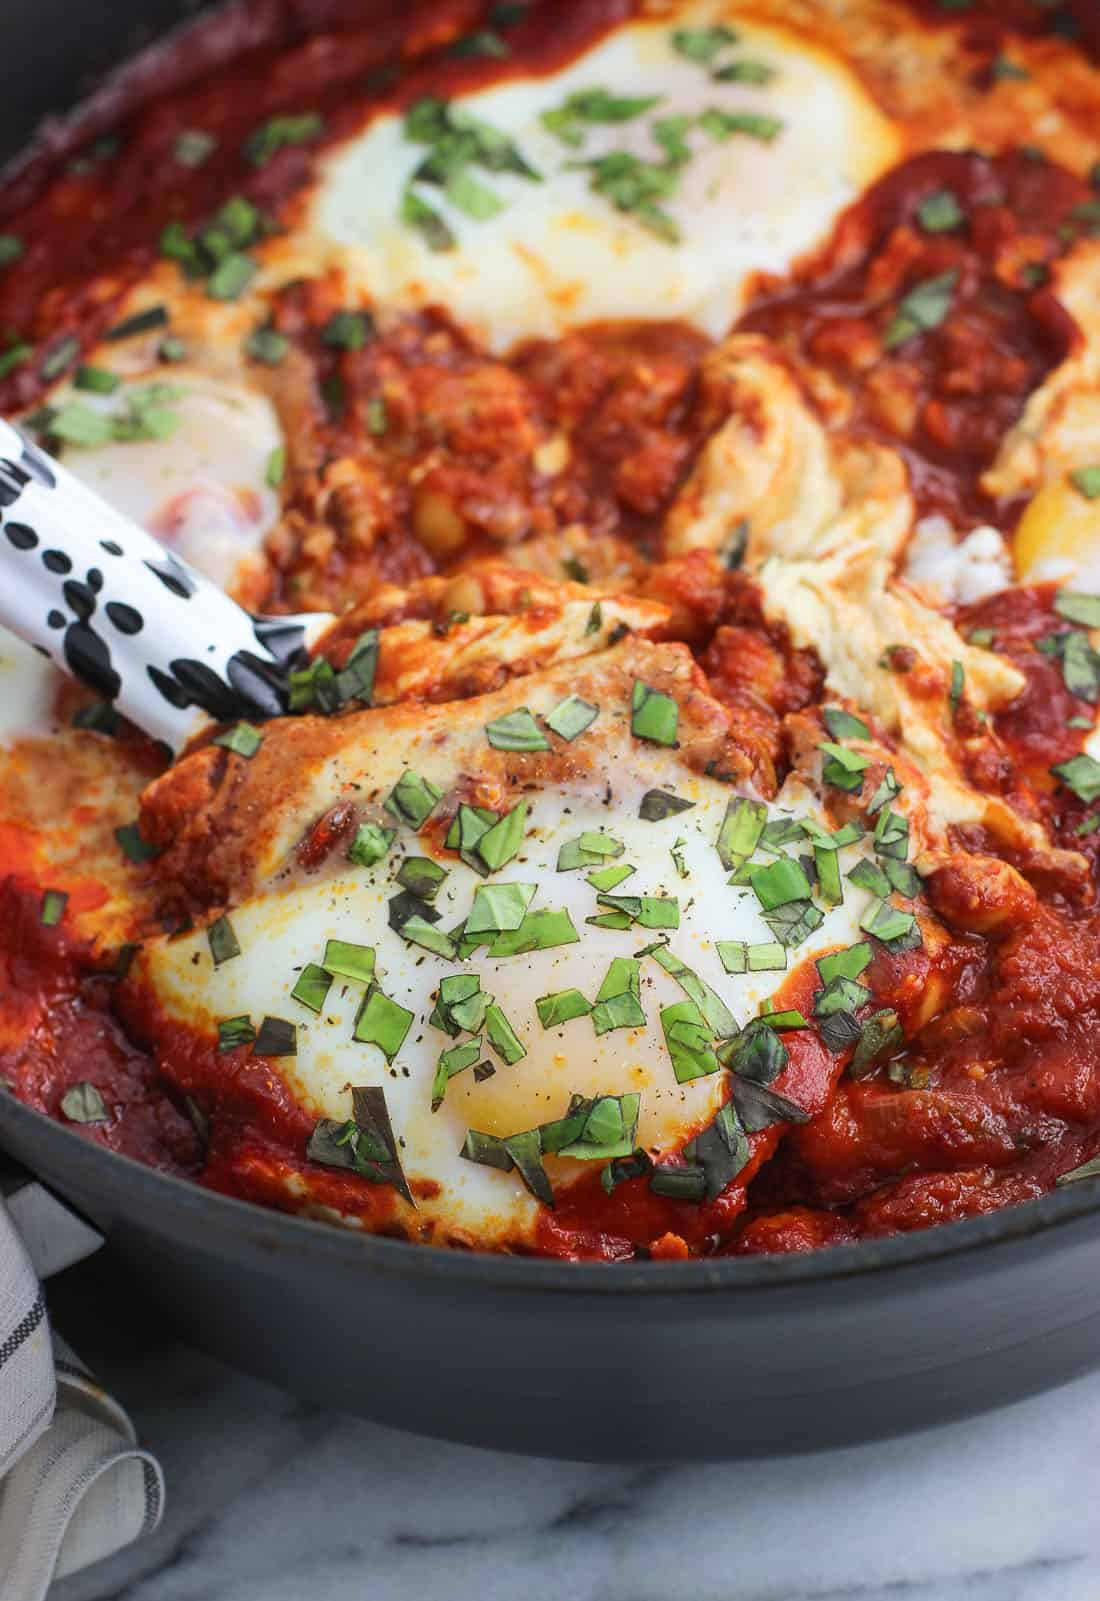 This recipe for shakshuka with chorizo and chickpeas is a quick, one-skillet dinner or anytime meal featuring a smoky spice blend for bold flavor.